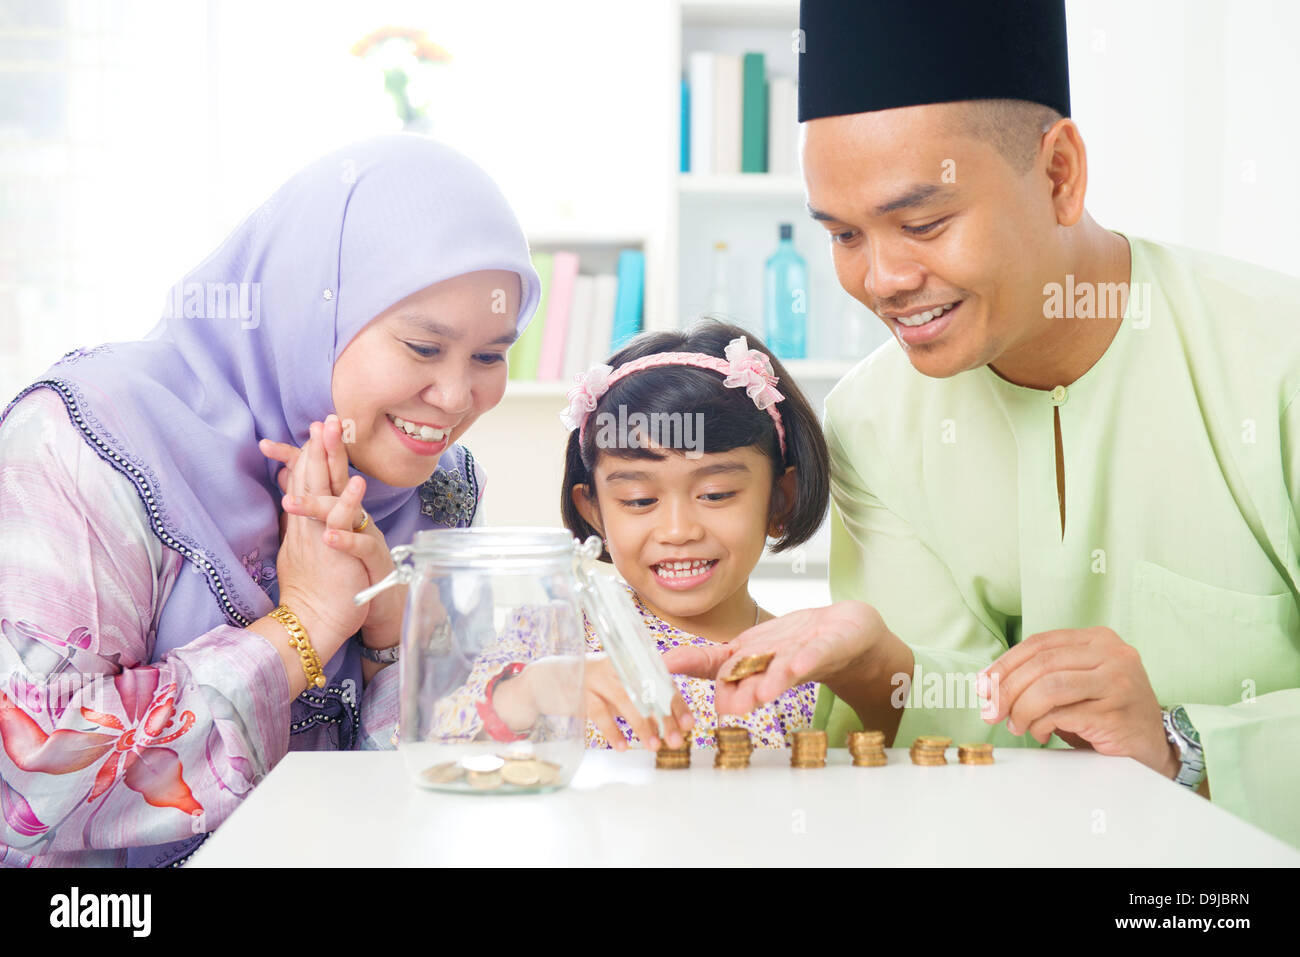 Islamic banking concept  Southeast Asian family counting